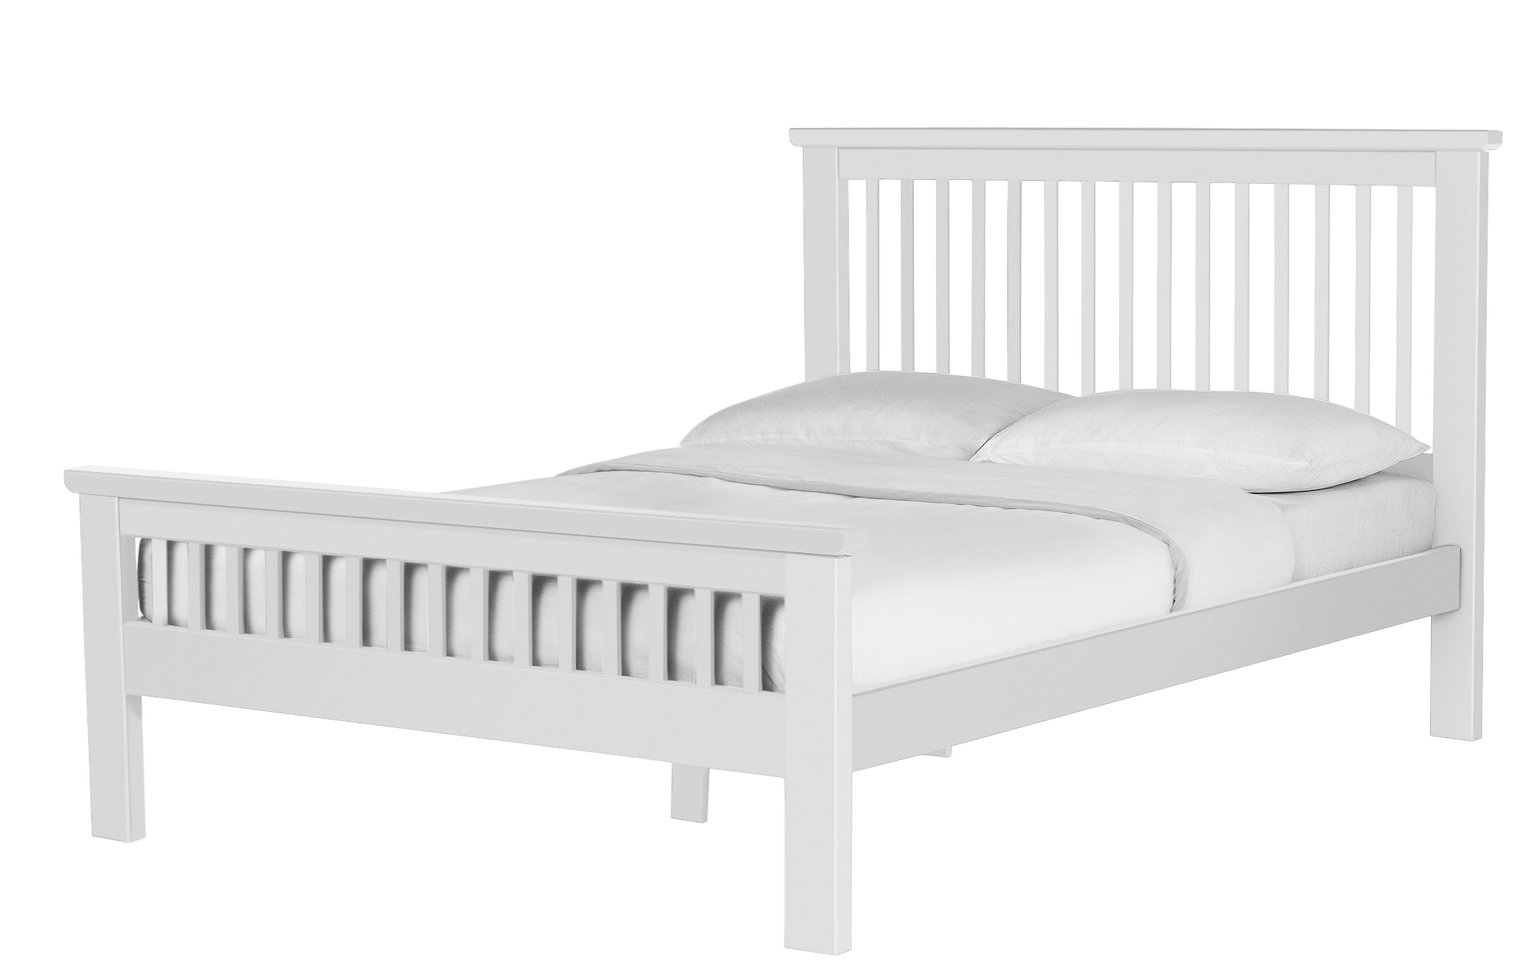 Argos Home Aubrey Small Double Bed Frame review